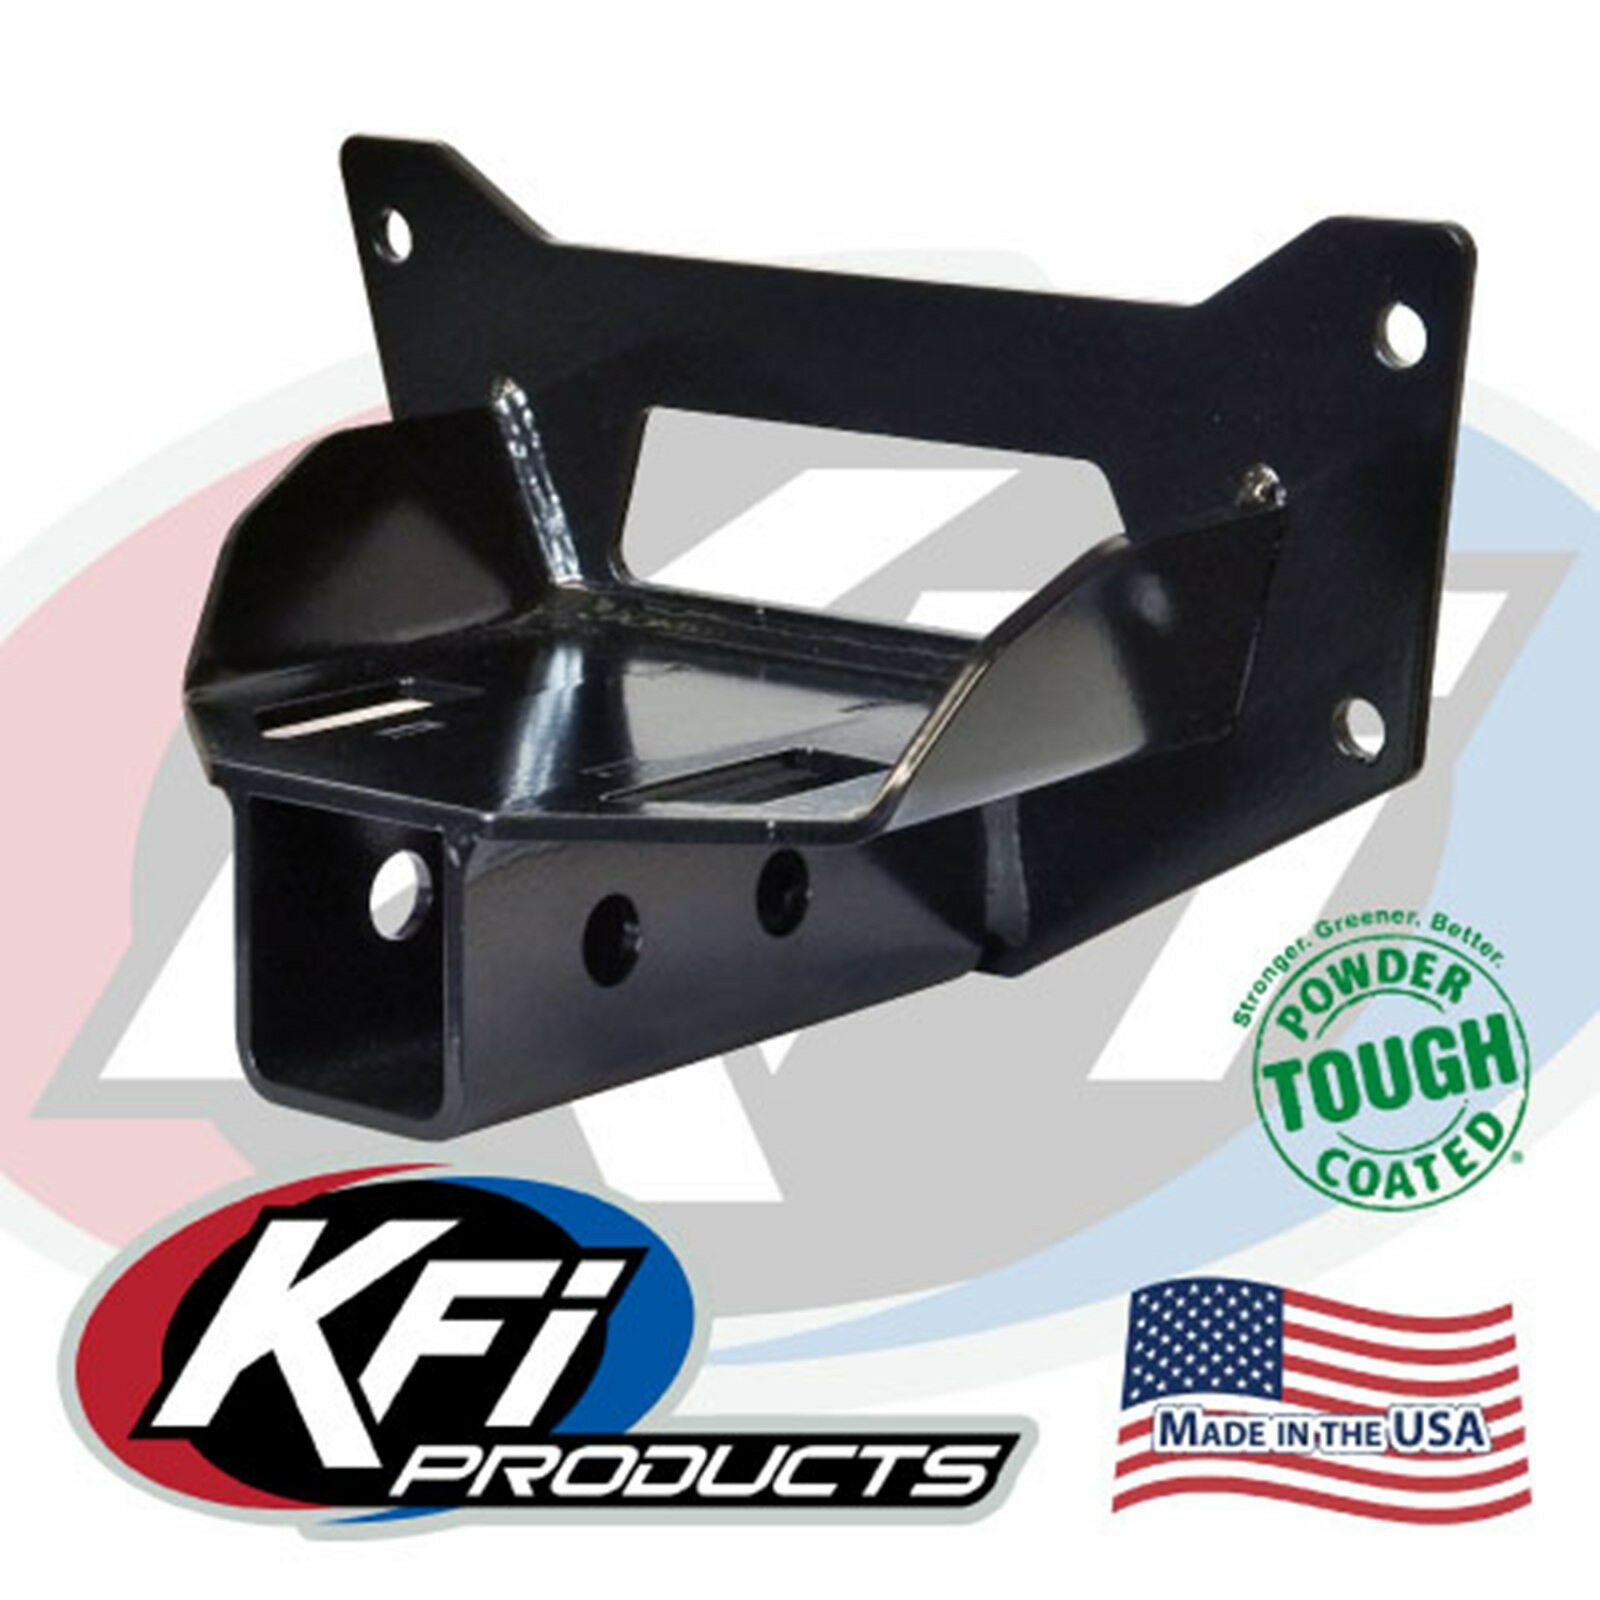 KFI Products 100905 Hitch Receiver